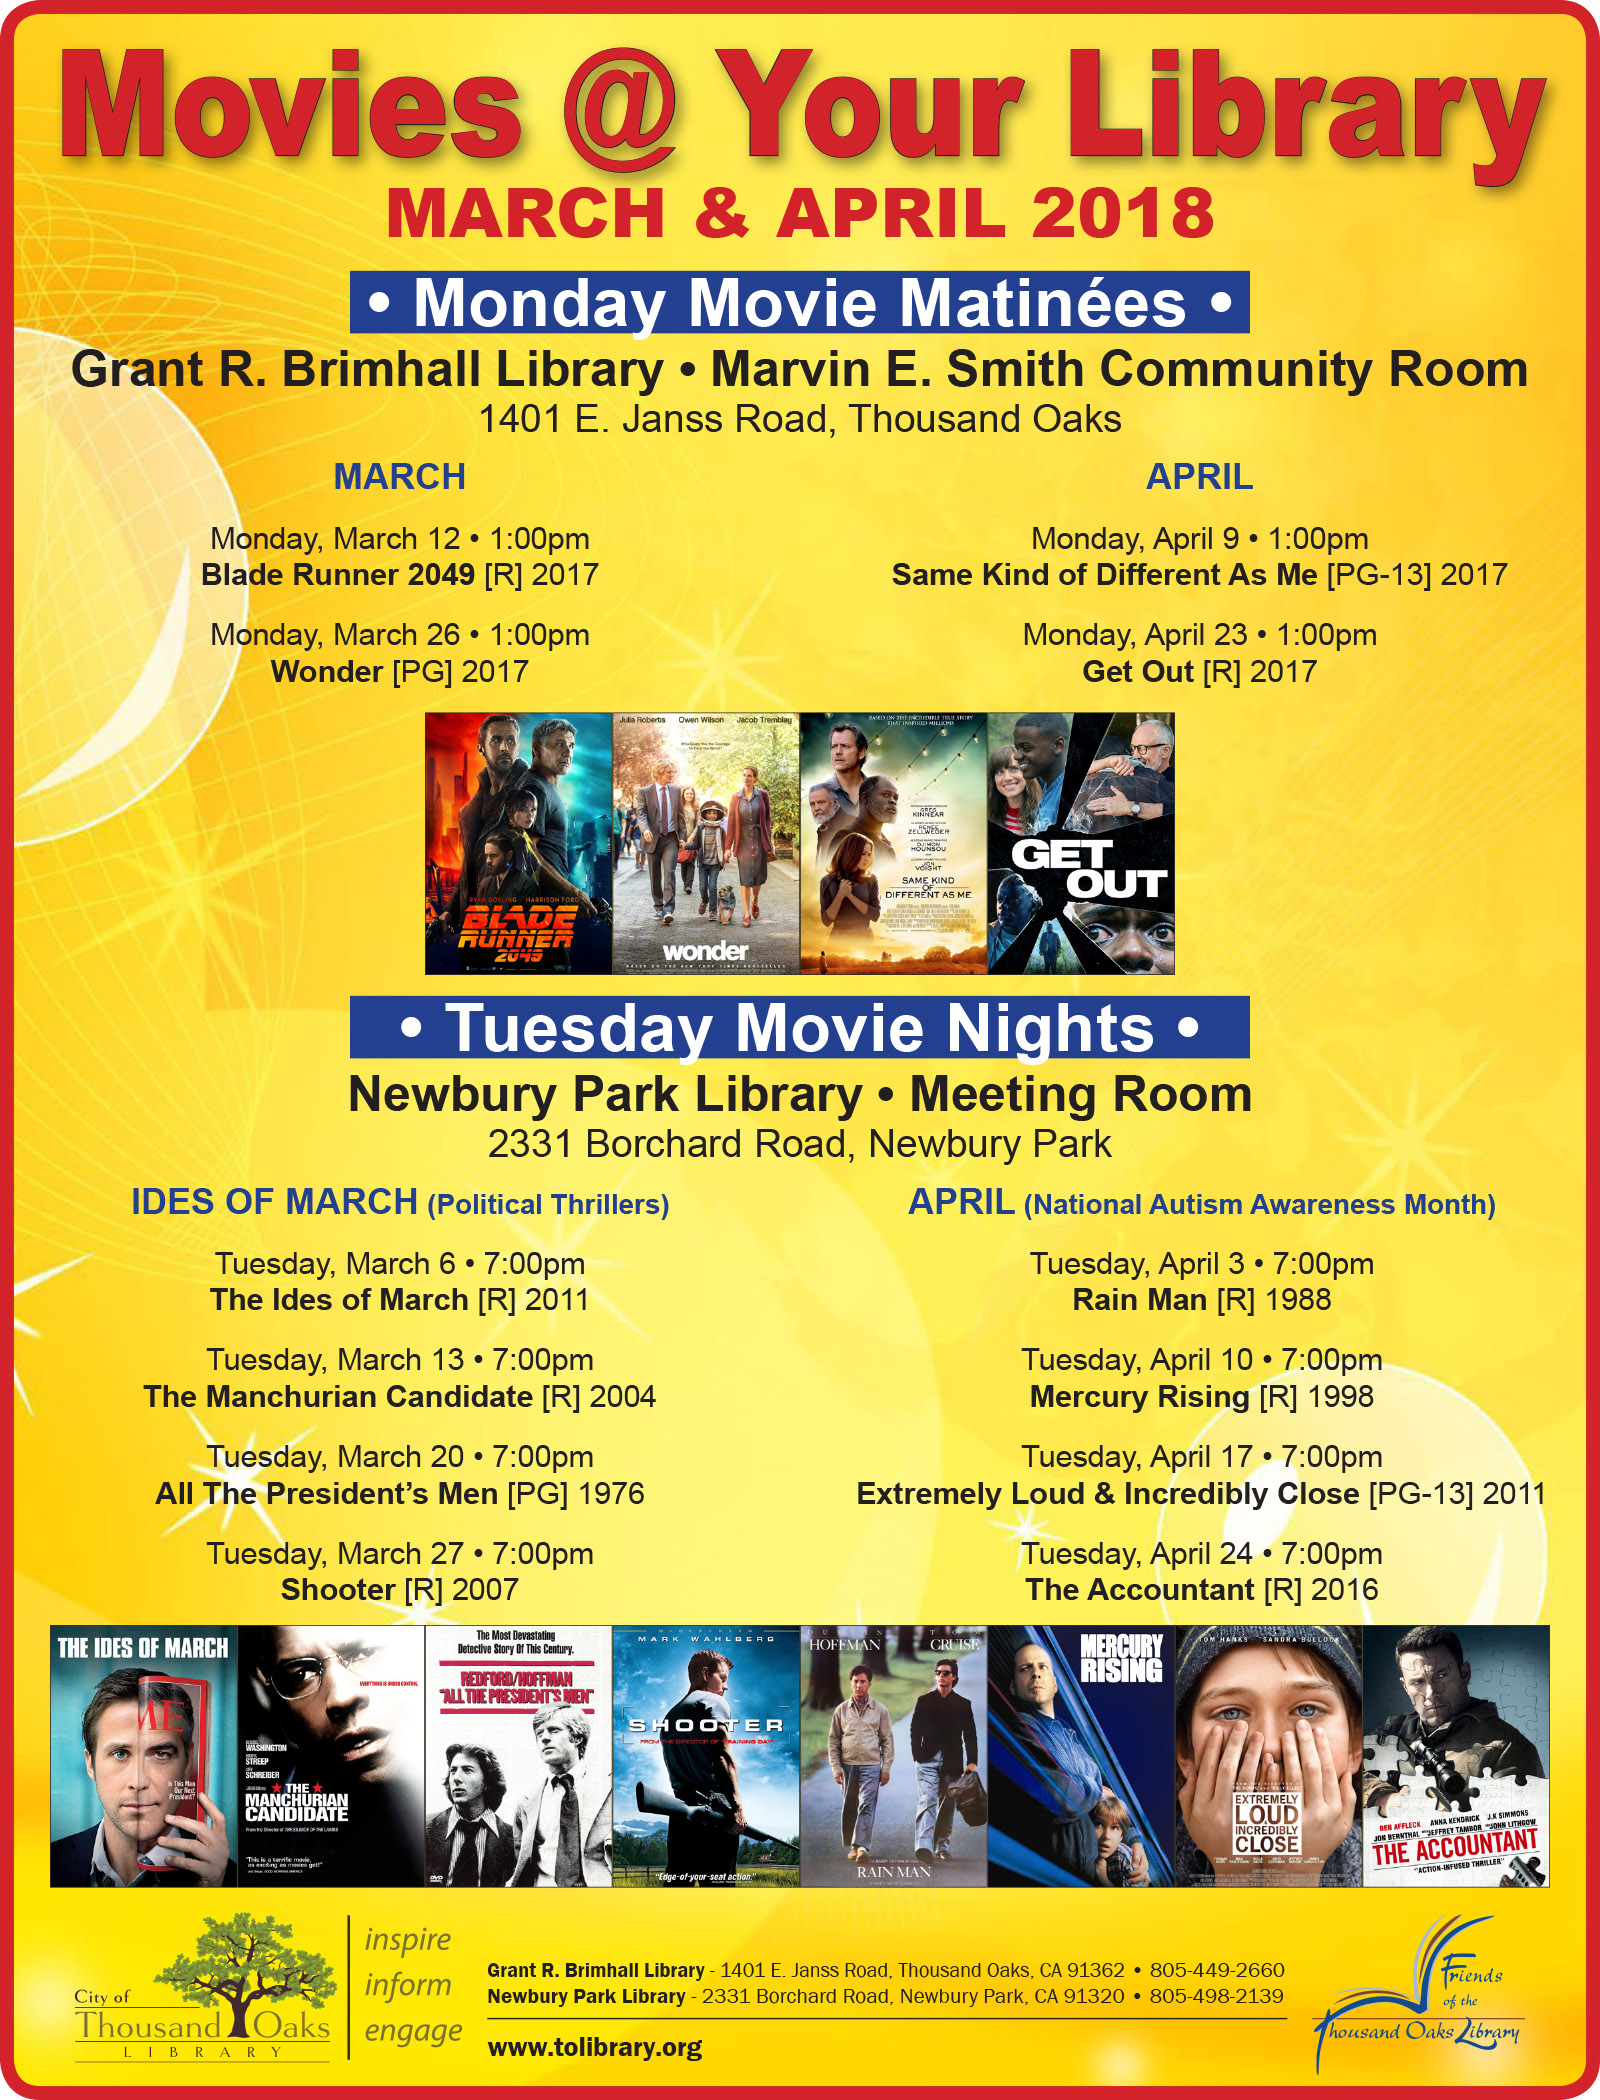 Movies @ Your Library - MarApr2018